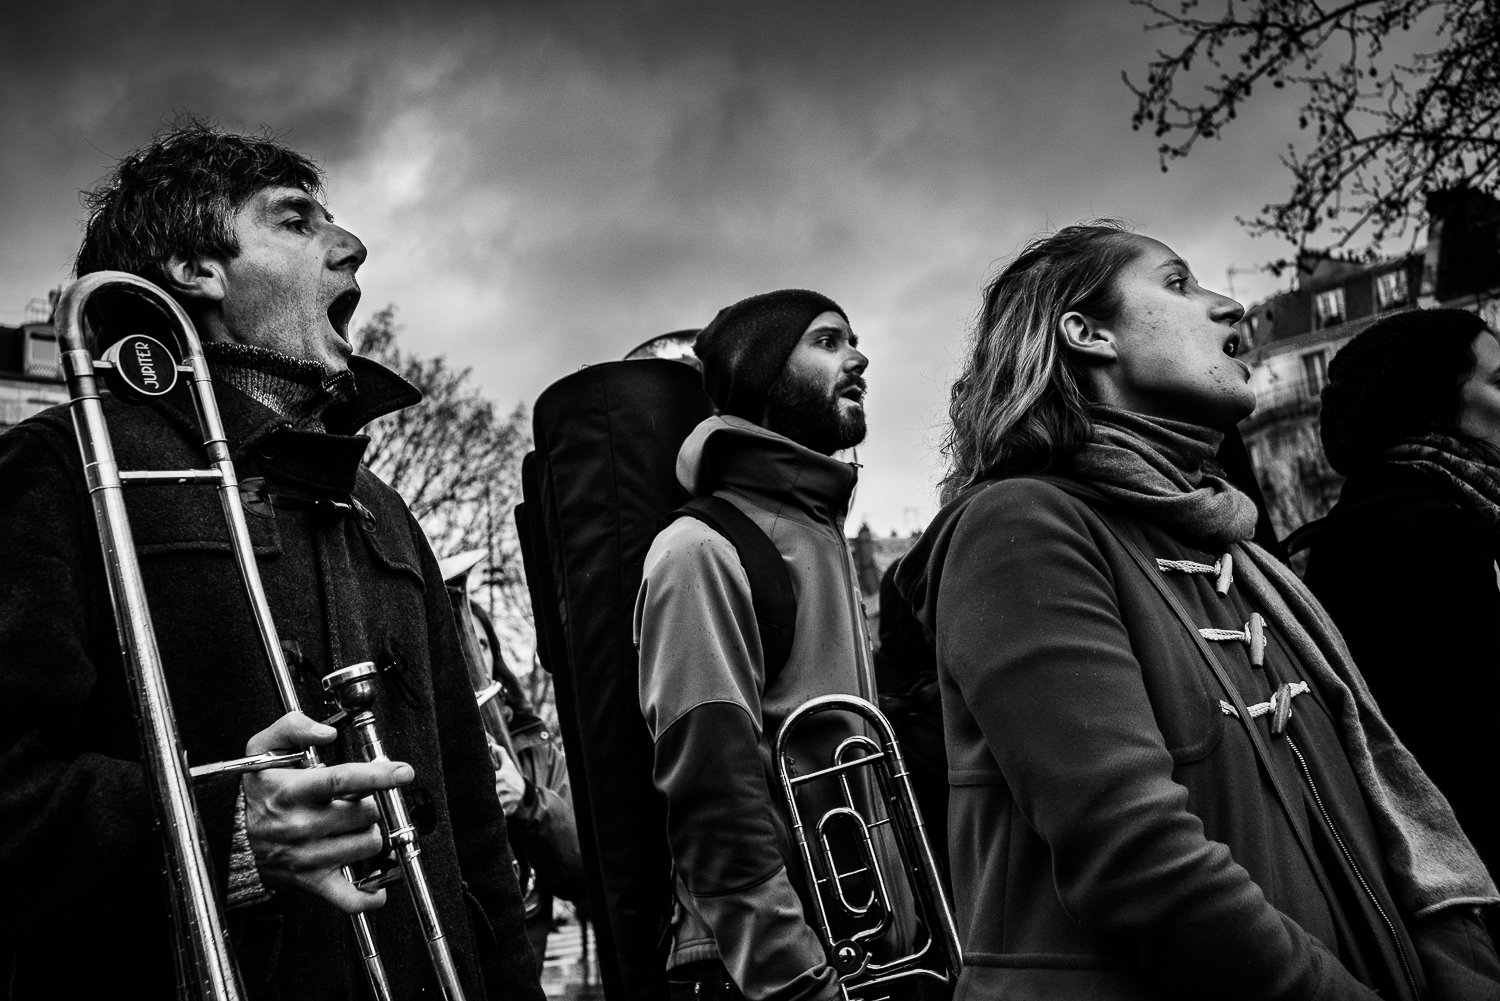 A band of musicians performing nationalistic songs for the crowd at Nuit Debout,3rd April 2016.